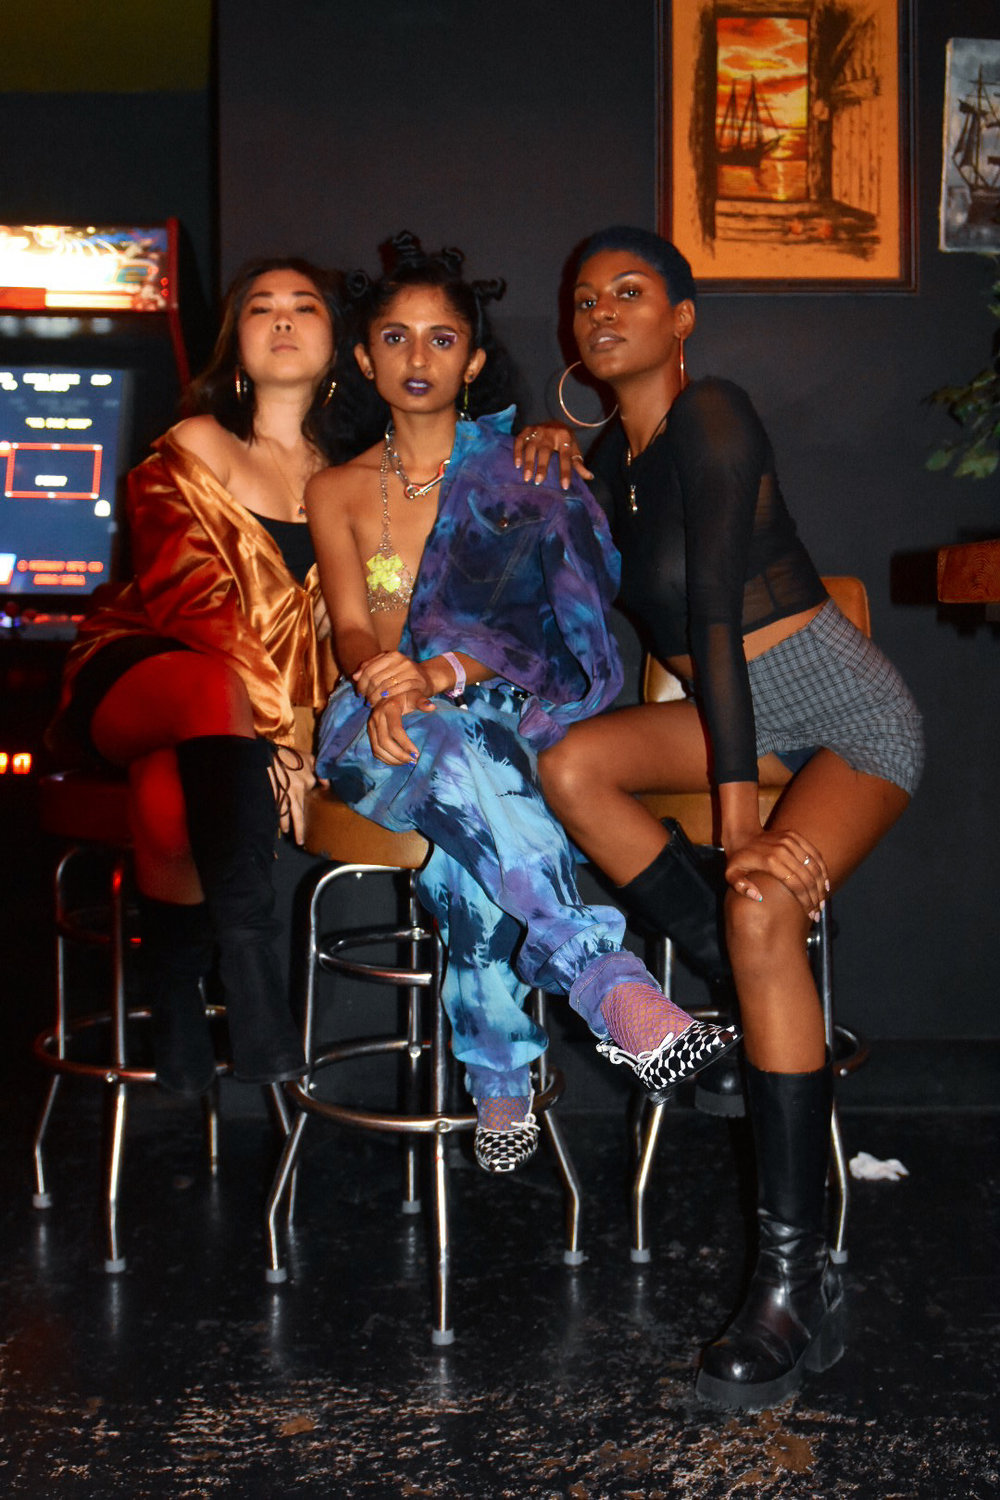 Julie, Anjali and Zuri in their post-show glow at Hopscotch Music Festival.